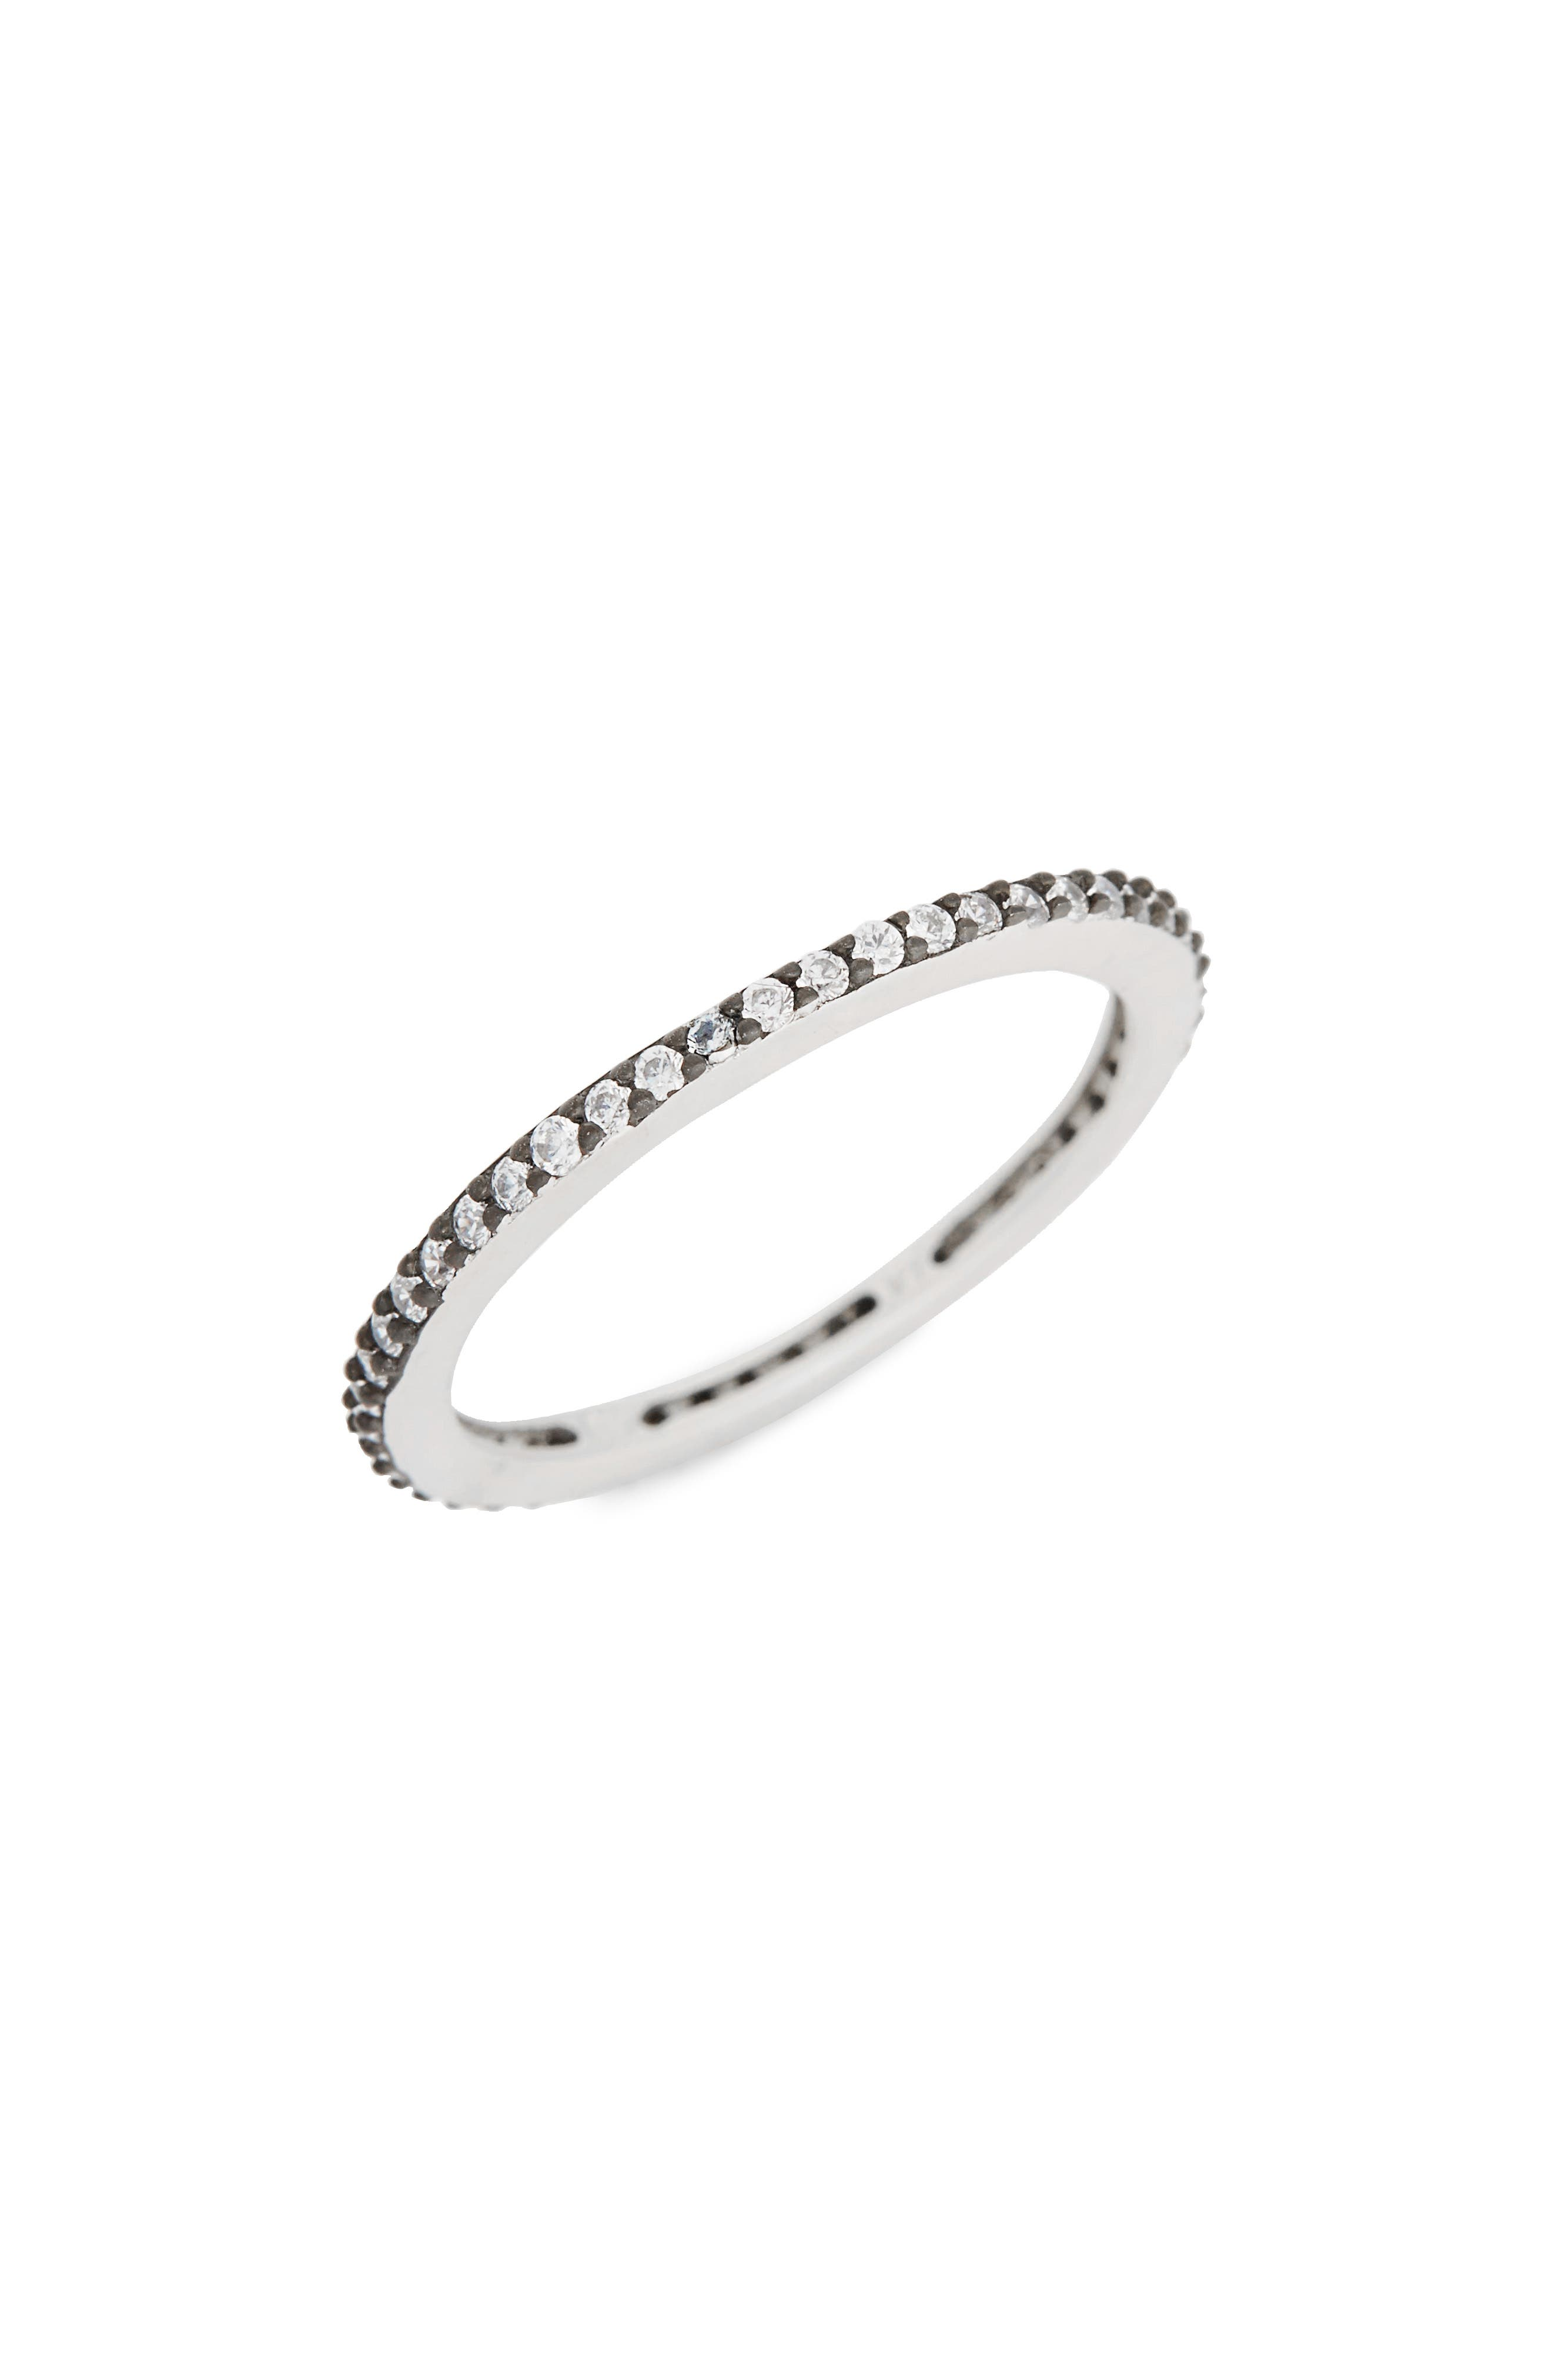 Single Stack Ring,                             Main thumbnail 1, color,                             Black/ Silver